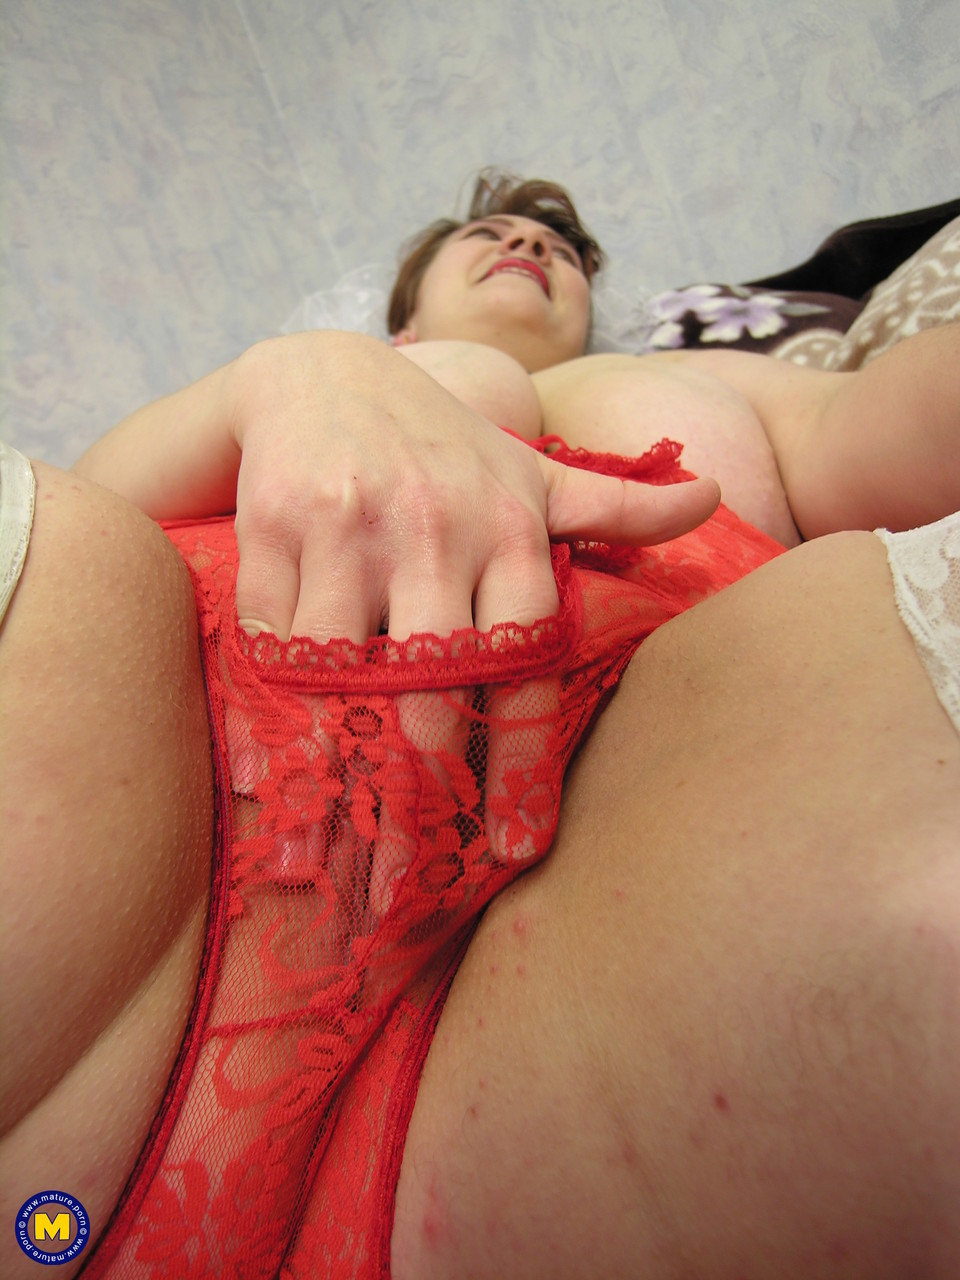 Mature women and grannies. Gallery - 701. Photo - 11